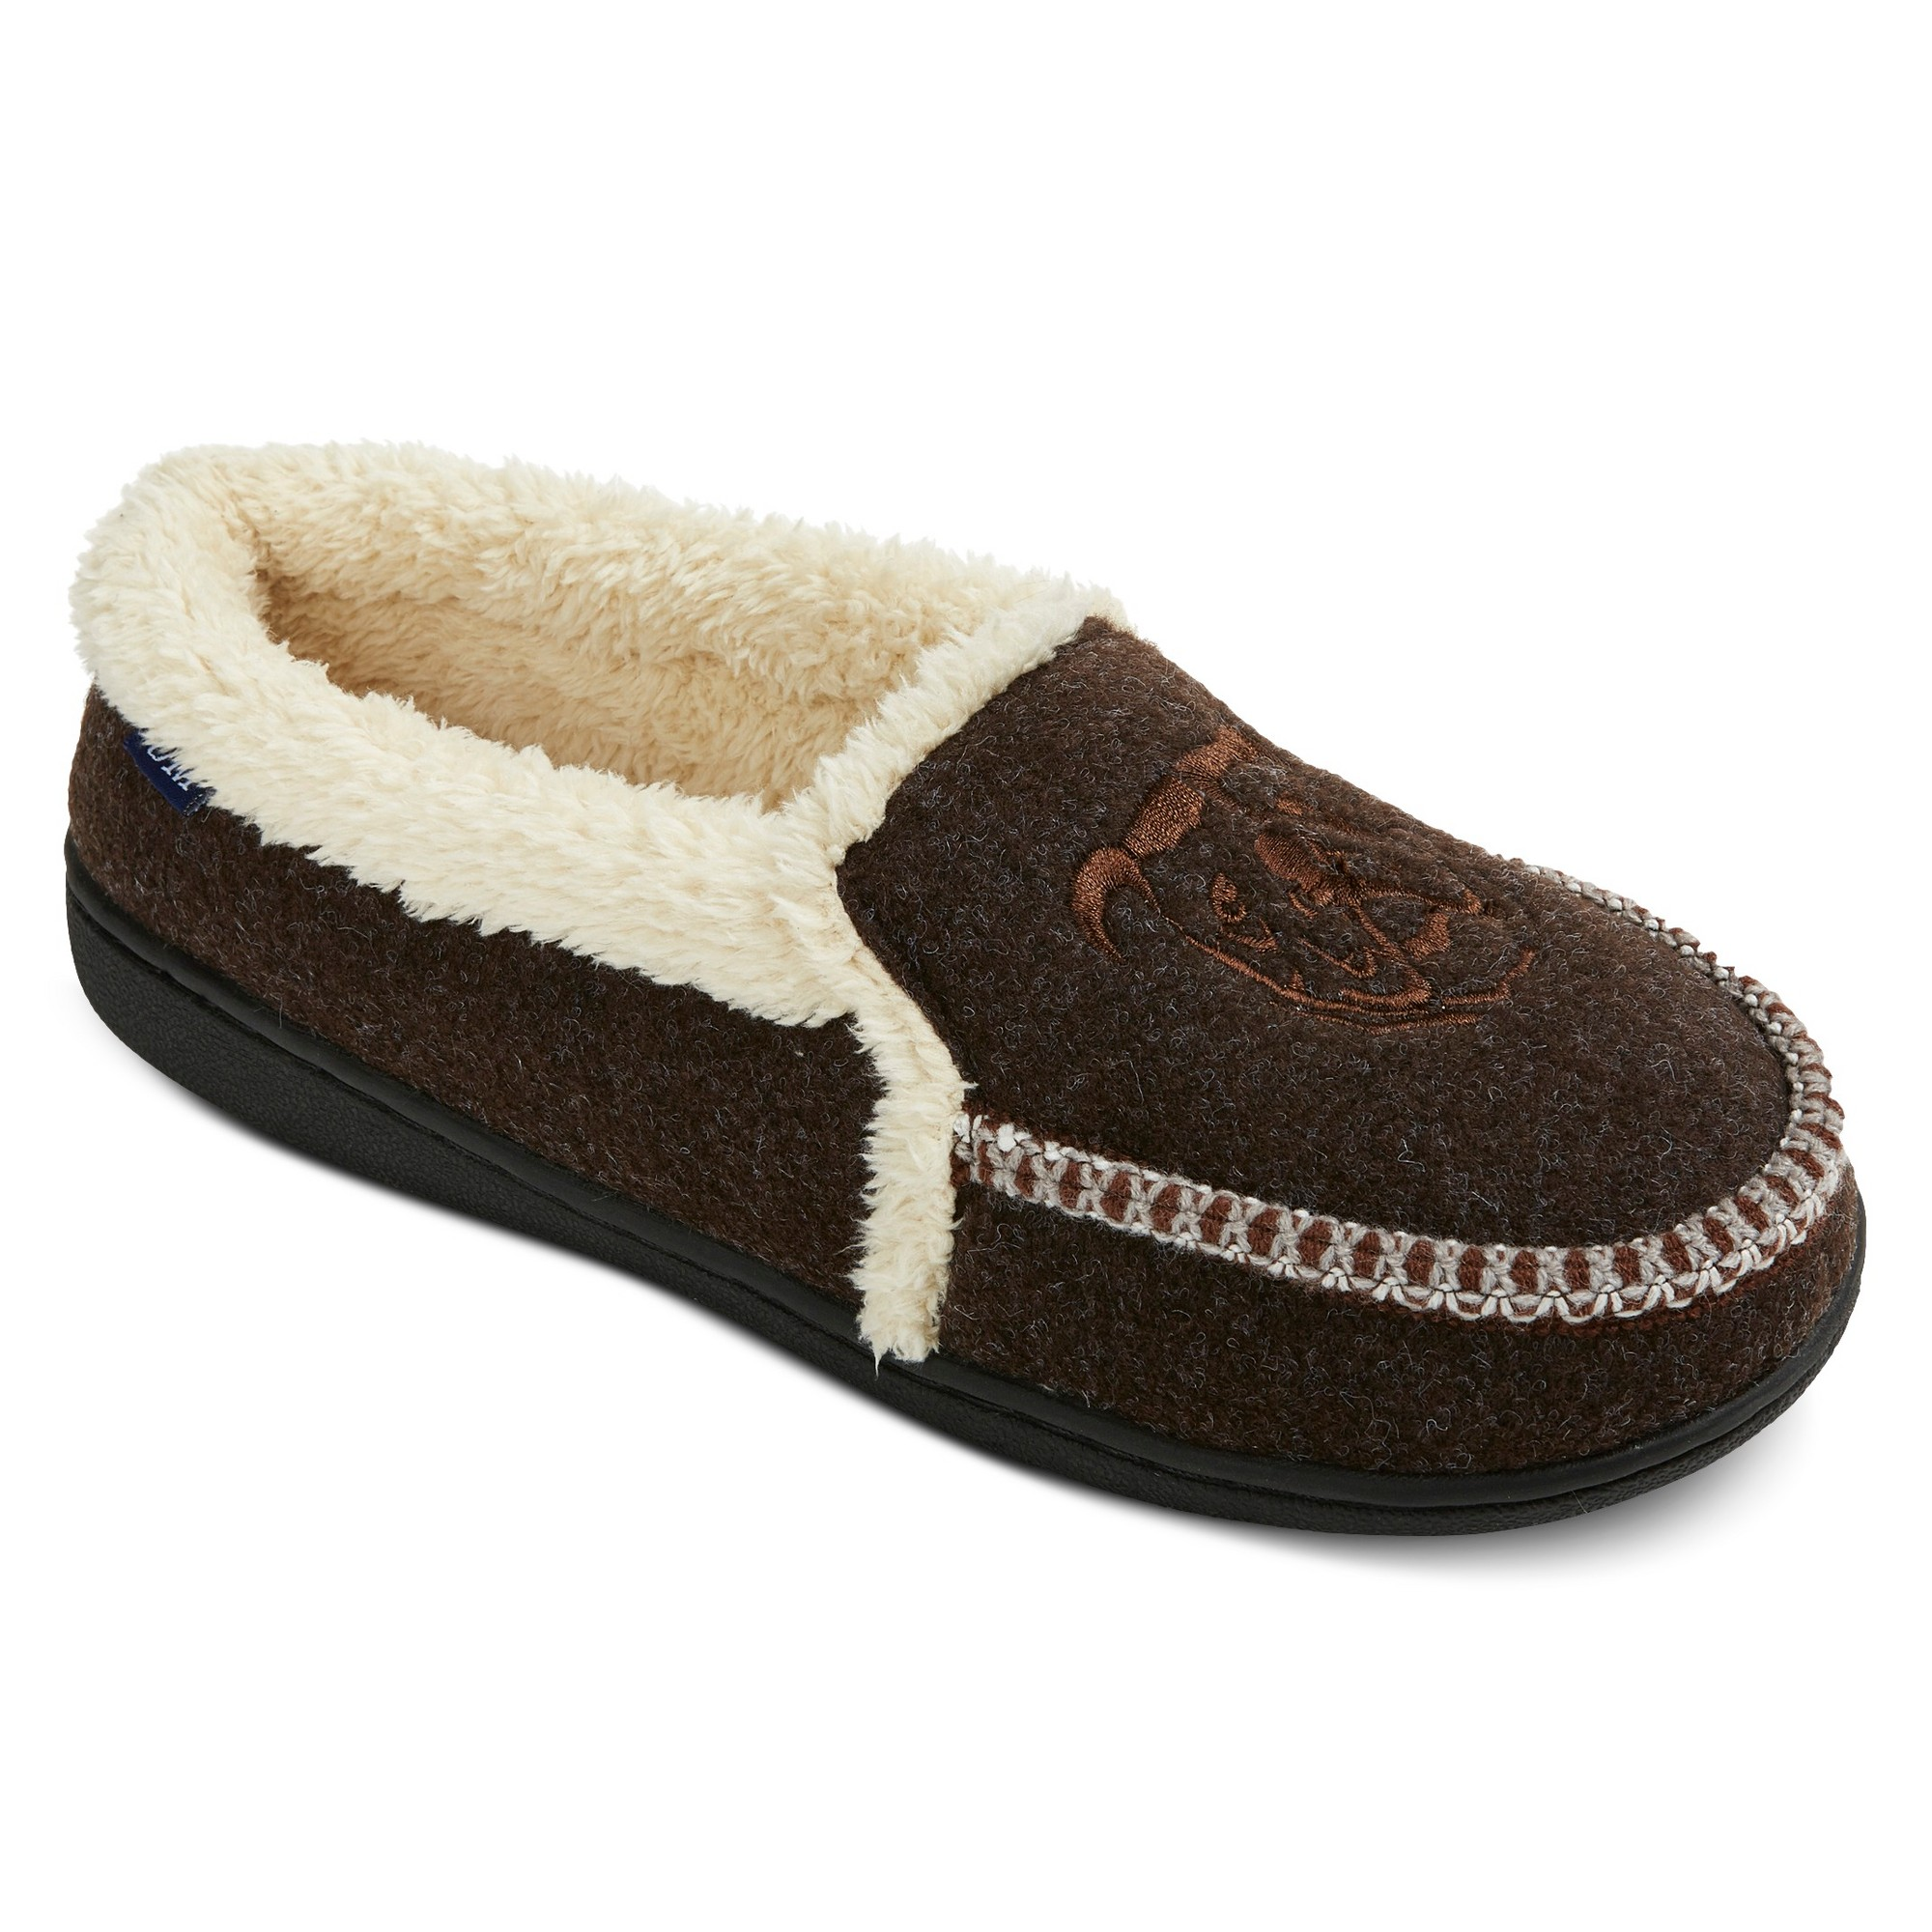 e900f4c51eb Men s Ugly Me London Moccasin Slippers - Brown M(9-10)